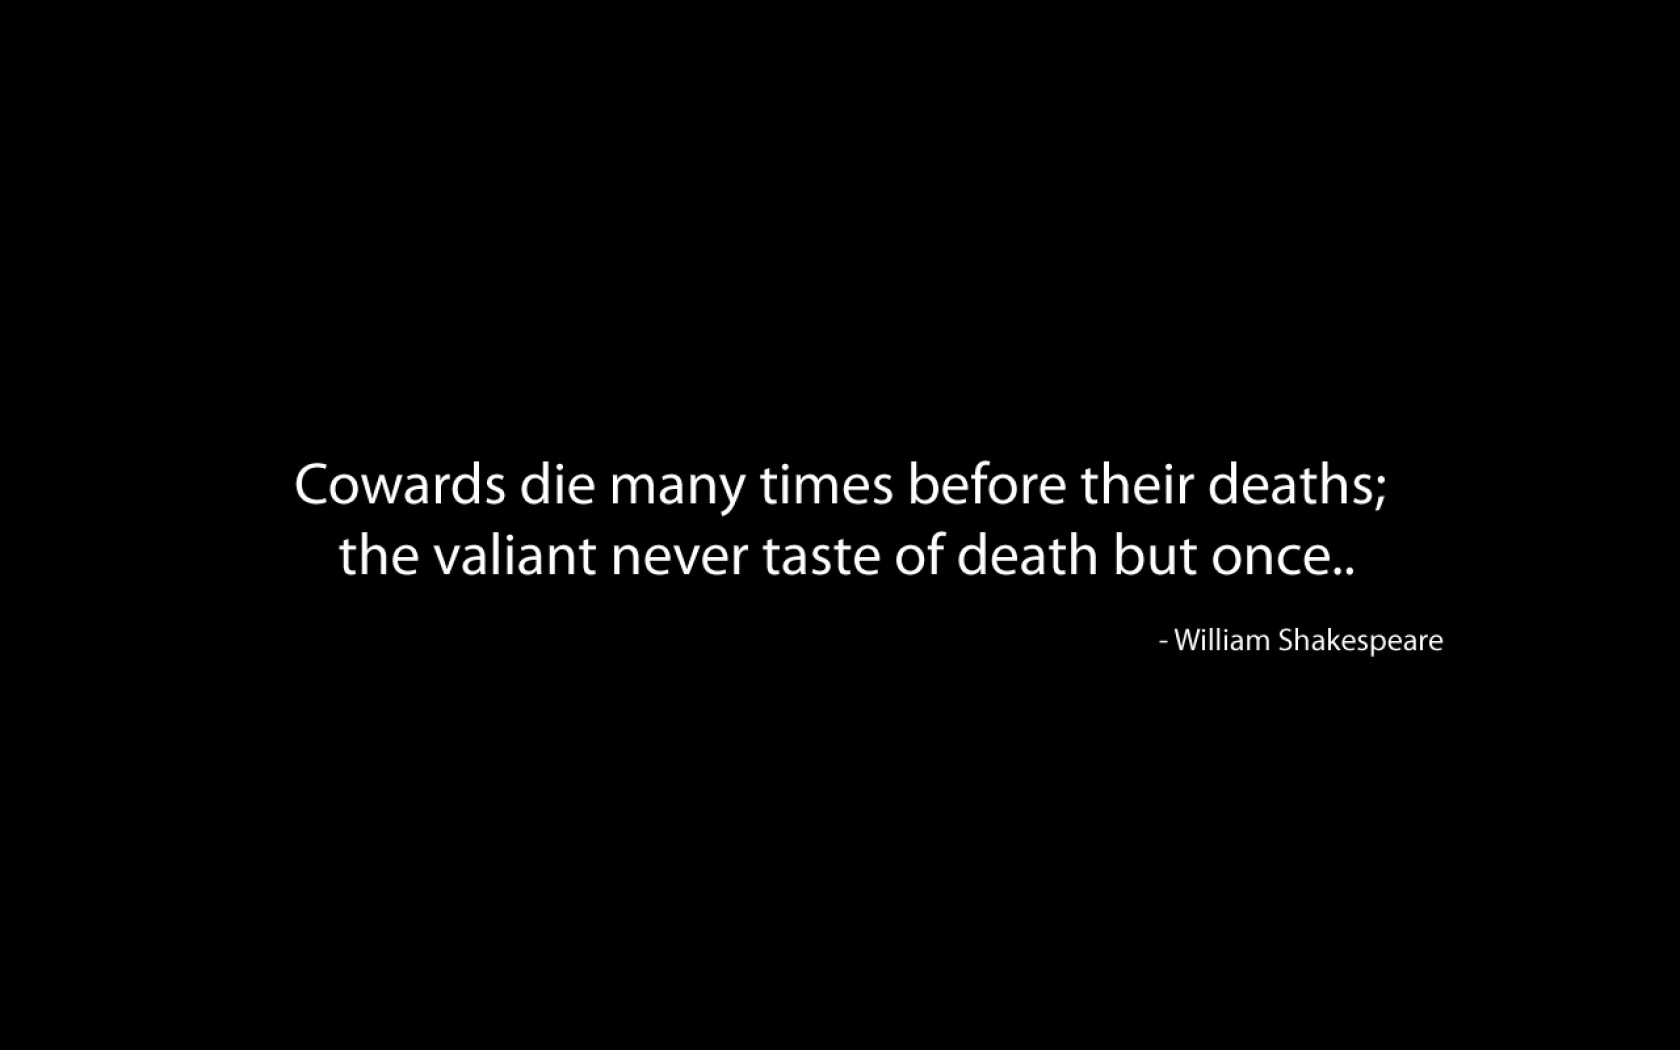 William Shakespeare Quotes About Friendship Friendship Quotes William Shakespeare  Wallpapers Desktop